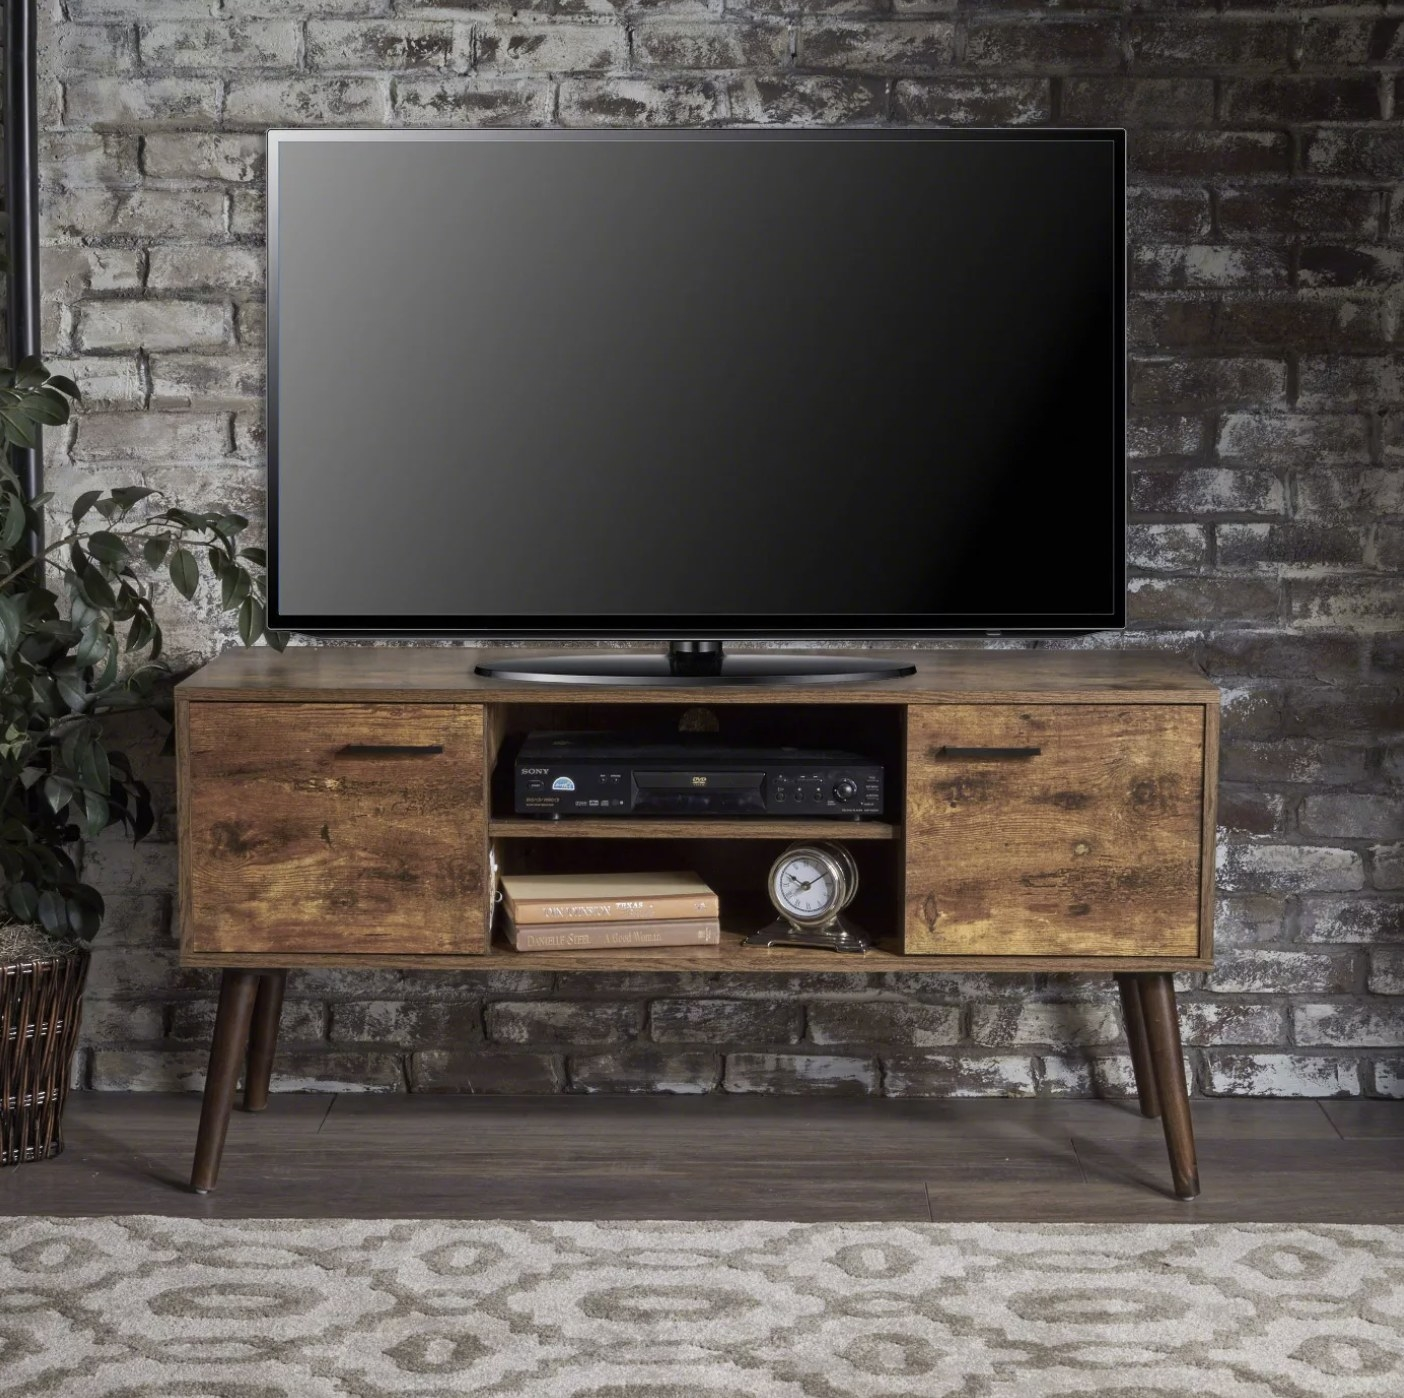 An entertainment stand with a TV on top